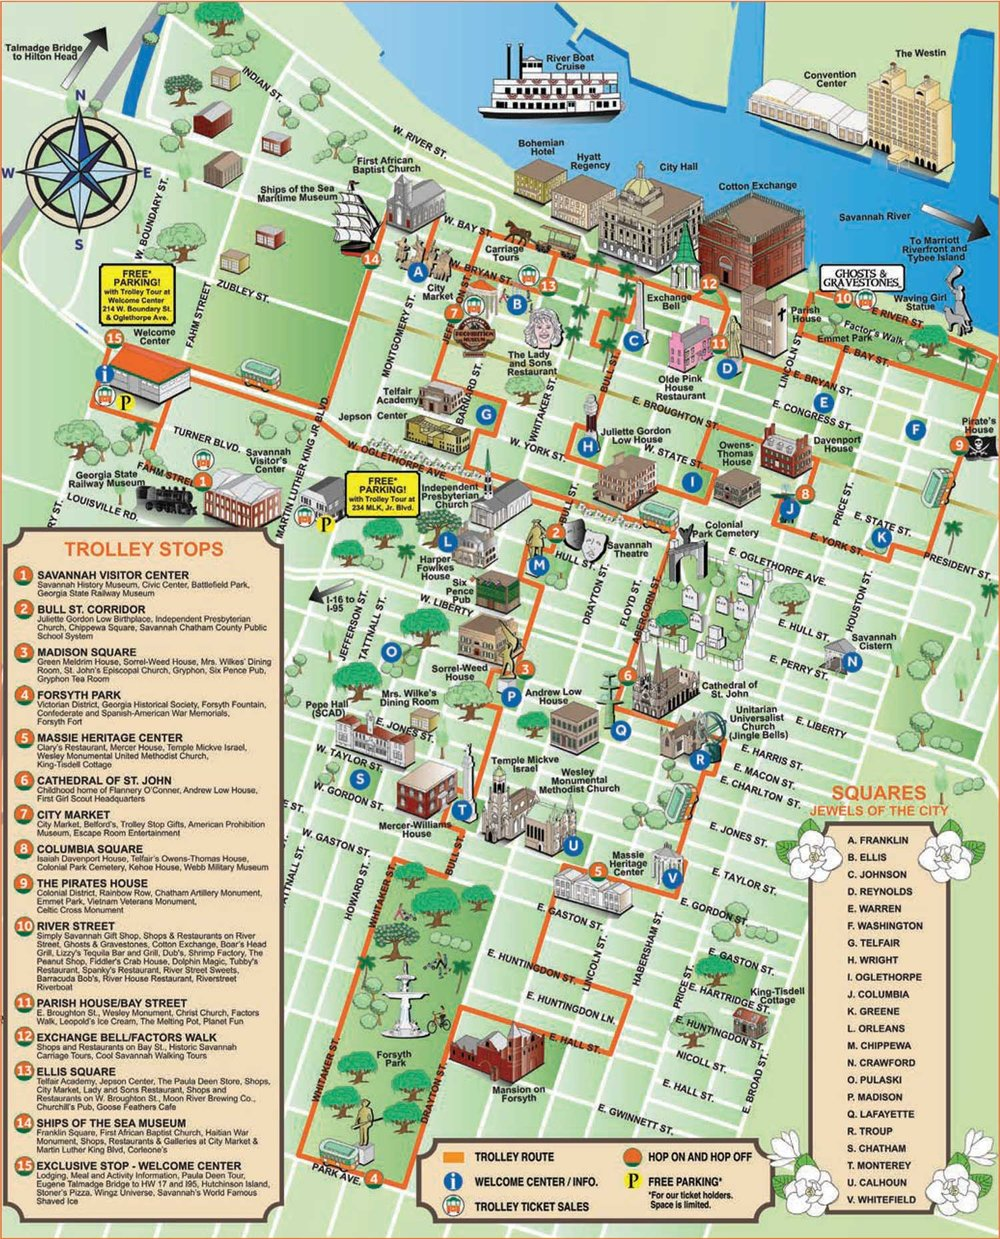 savannah-trolley-tour-map.jpg